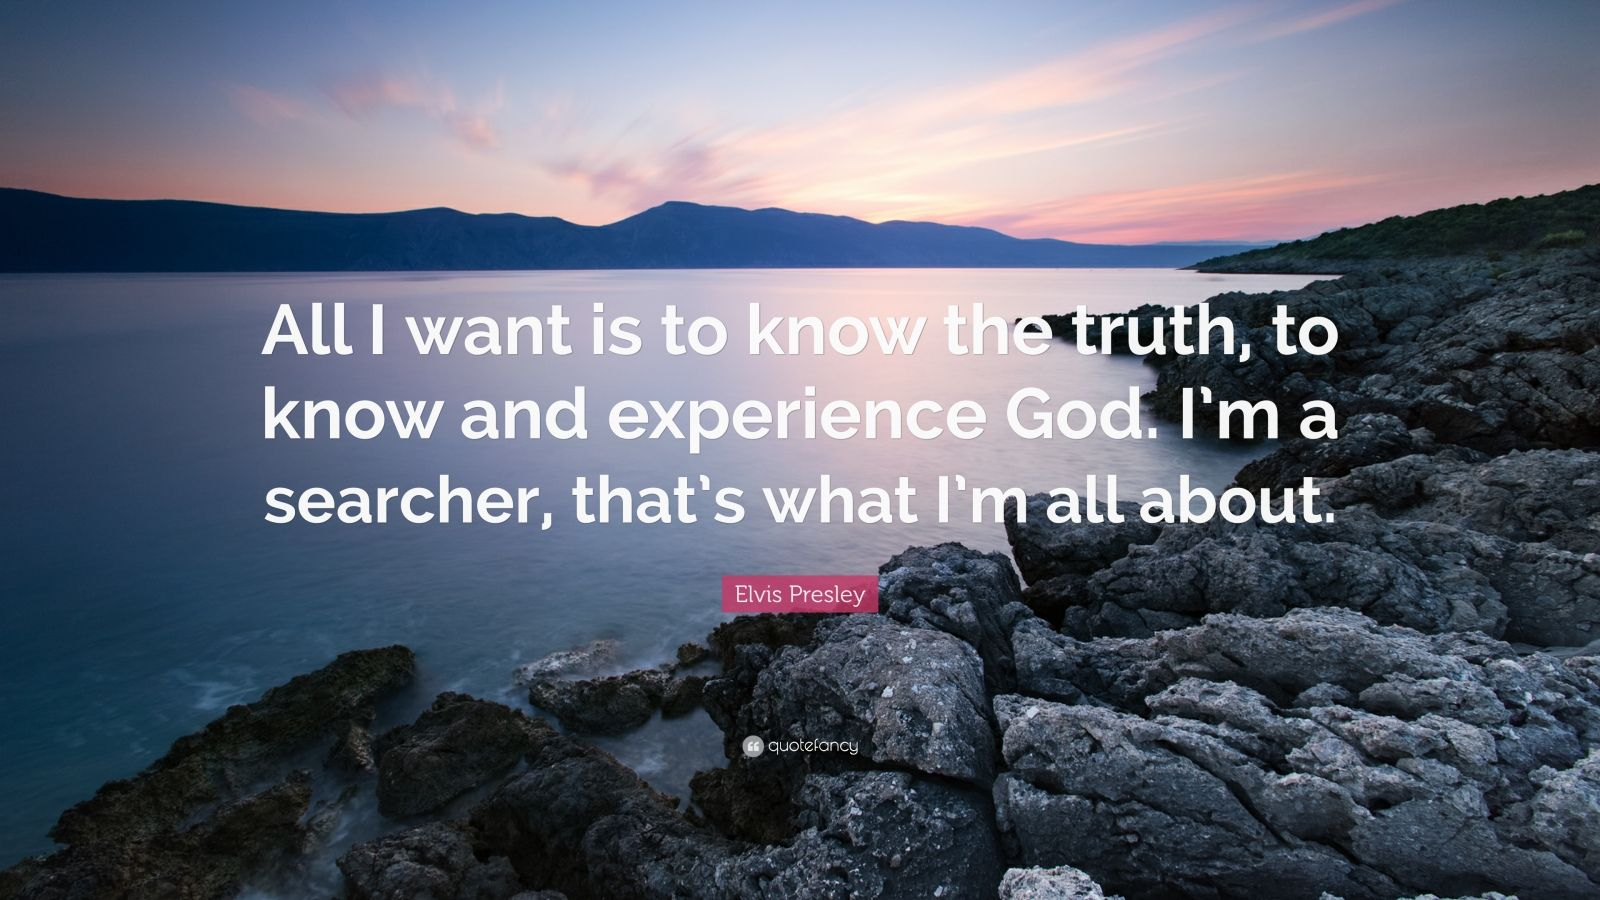 "Elvis Presley Quote: ""All I want is to know the truth, to know and experience God. I'm a searcher, that's what I'm all about."""